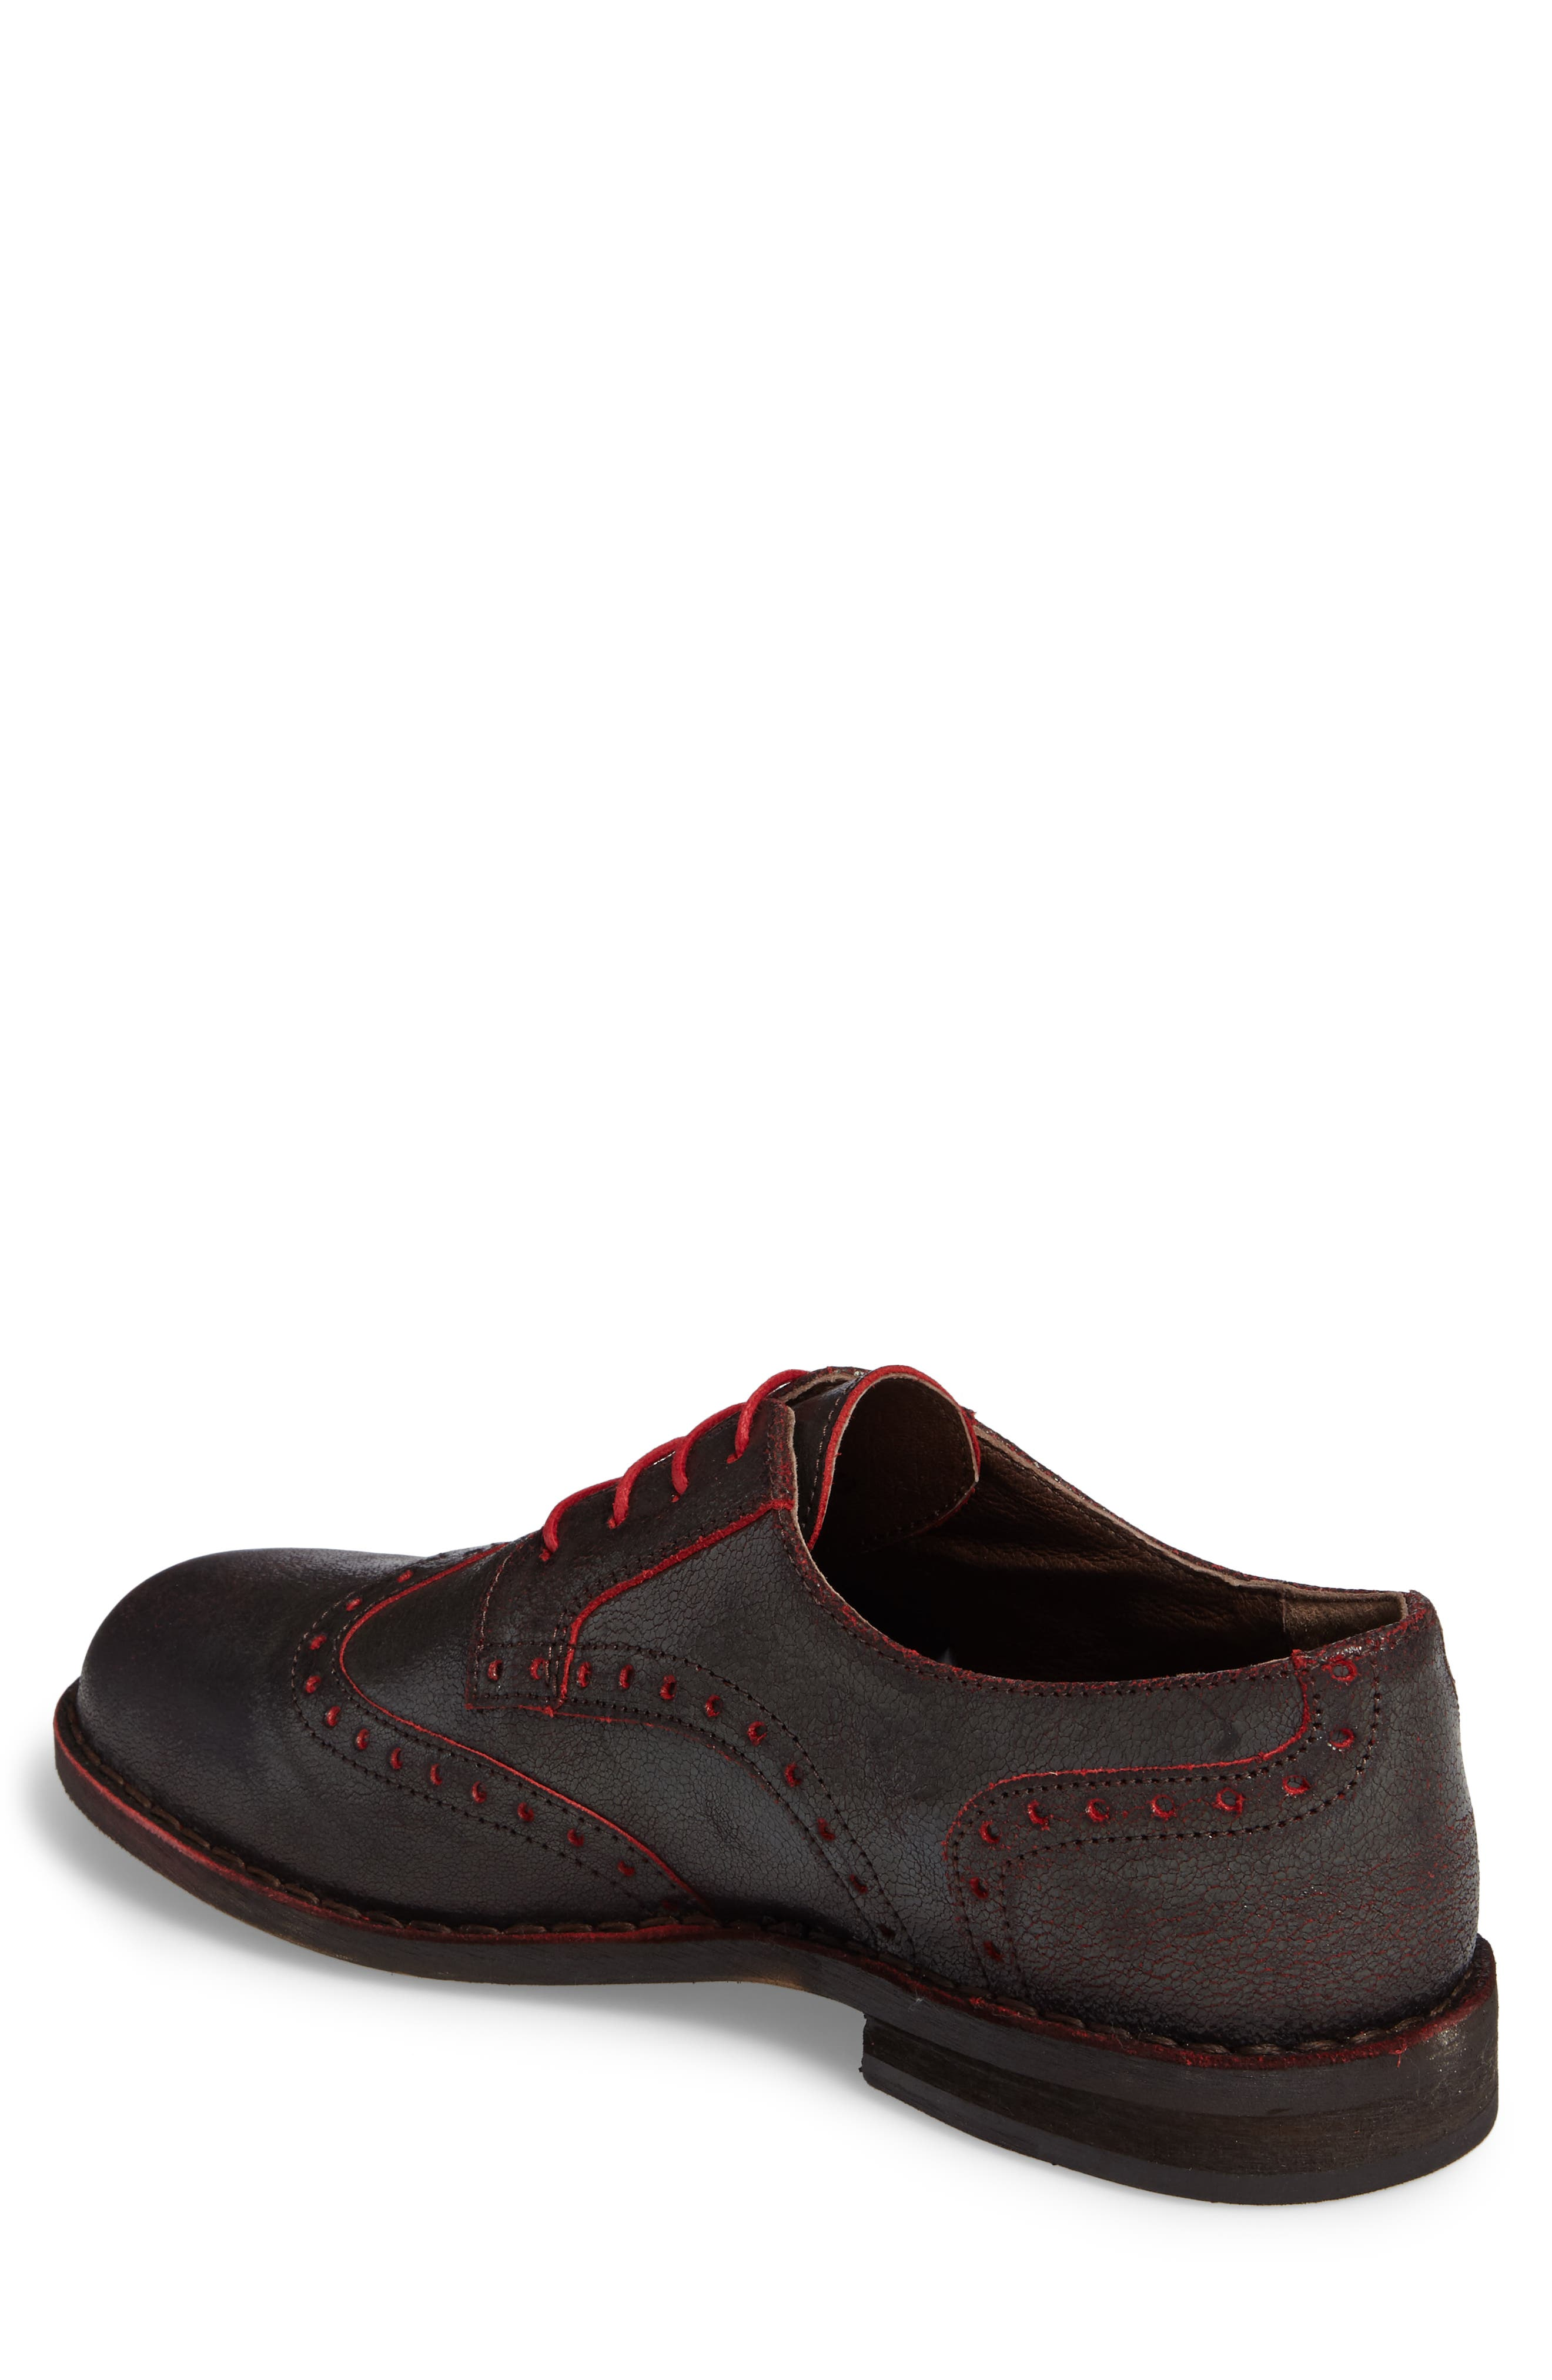 Idal Wingtip,                             Alternate thumbnail 2, color,                             Brown/ Red